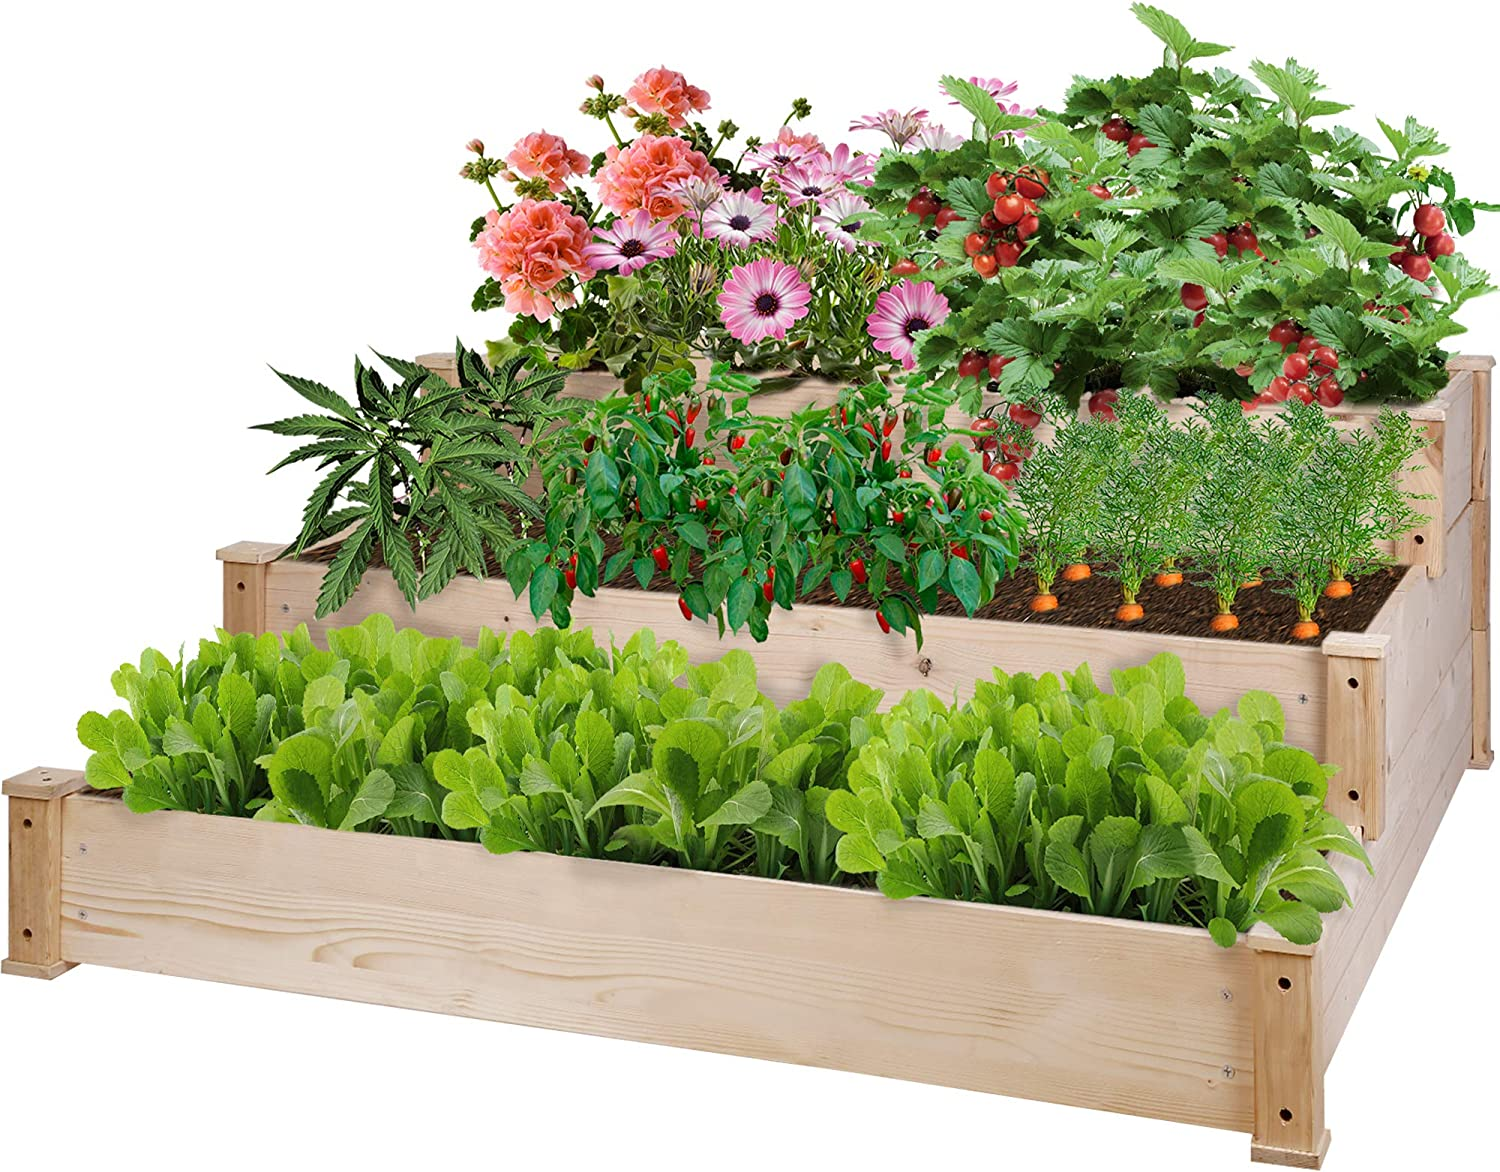 Raised Garden Bed 3 Tier Elevated Planter Box Gardening Bed Grow Herbs, Vegetables, Fruits, Flowers, Natural Pine Wood